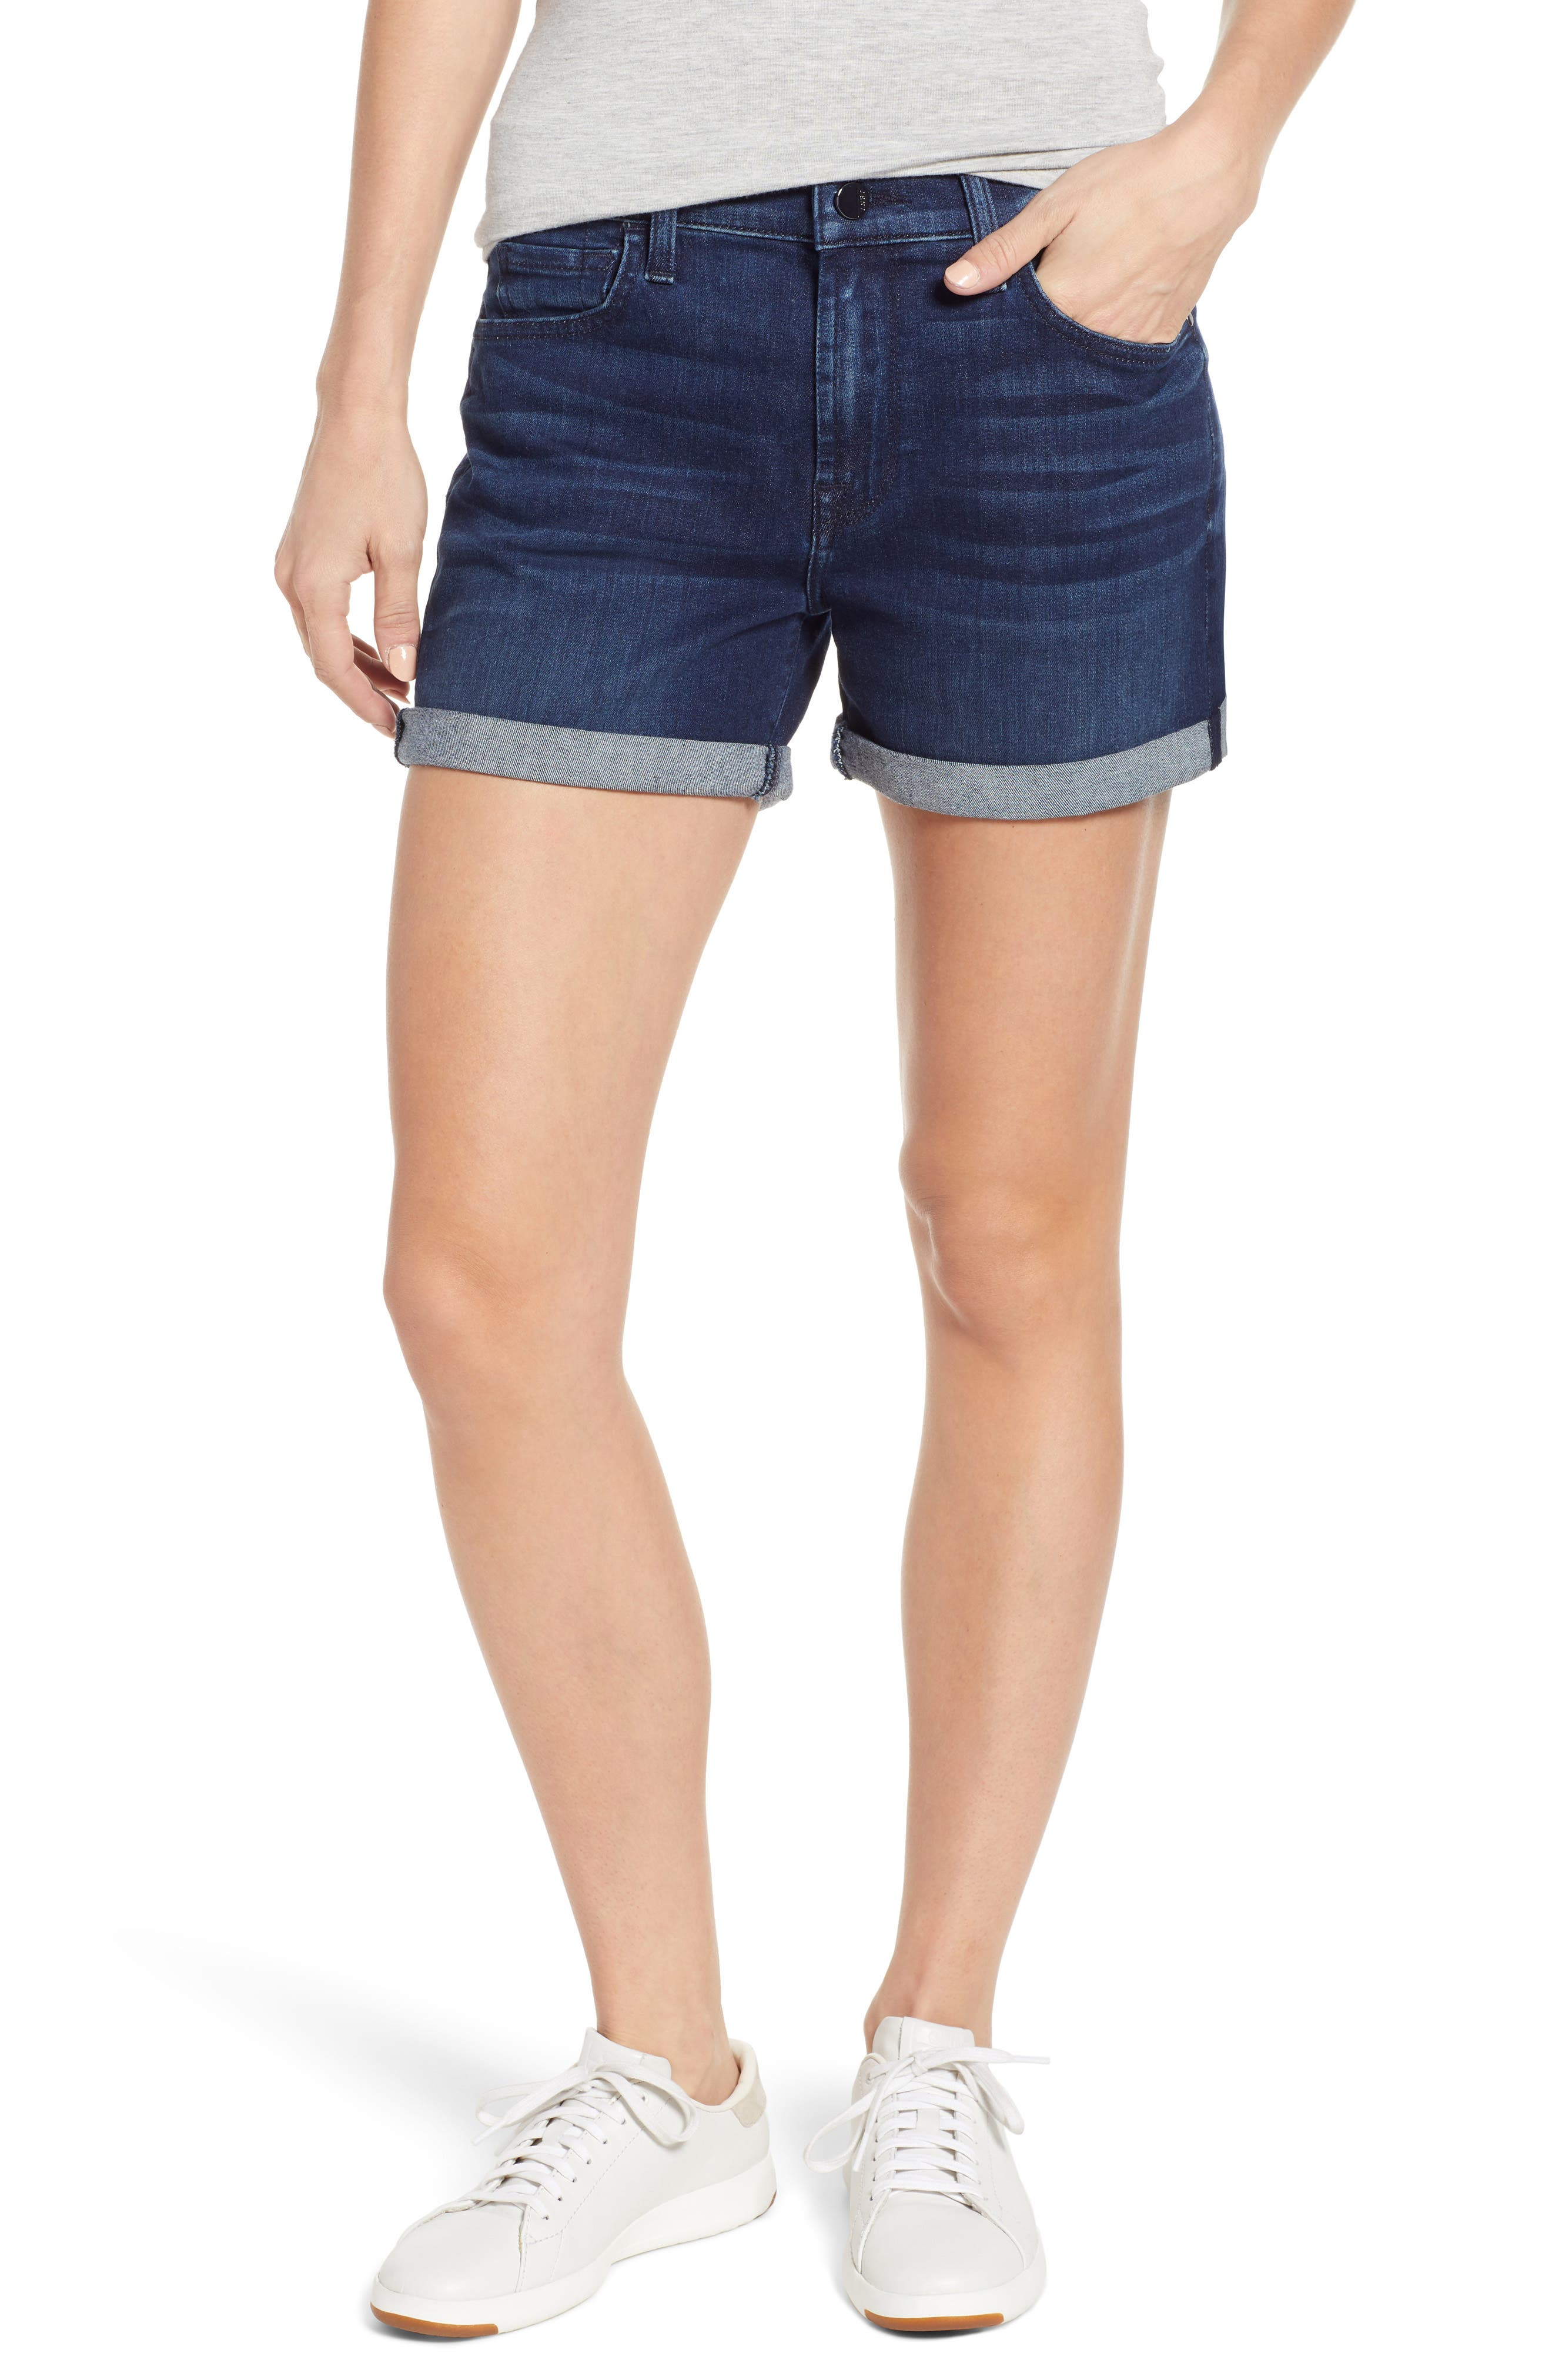 JEN7 BY 7 FOR ALL MANKIND Roll Cuff Denim Shorts, Main, color, IMPERIAL INDIGO